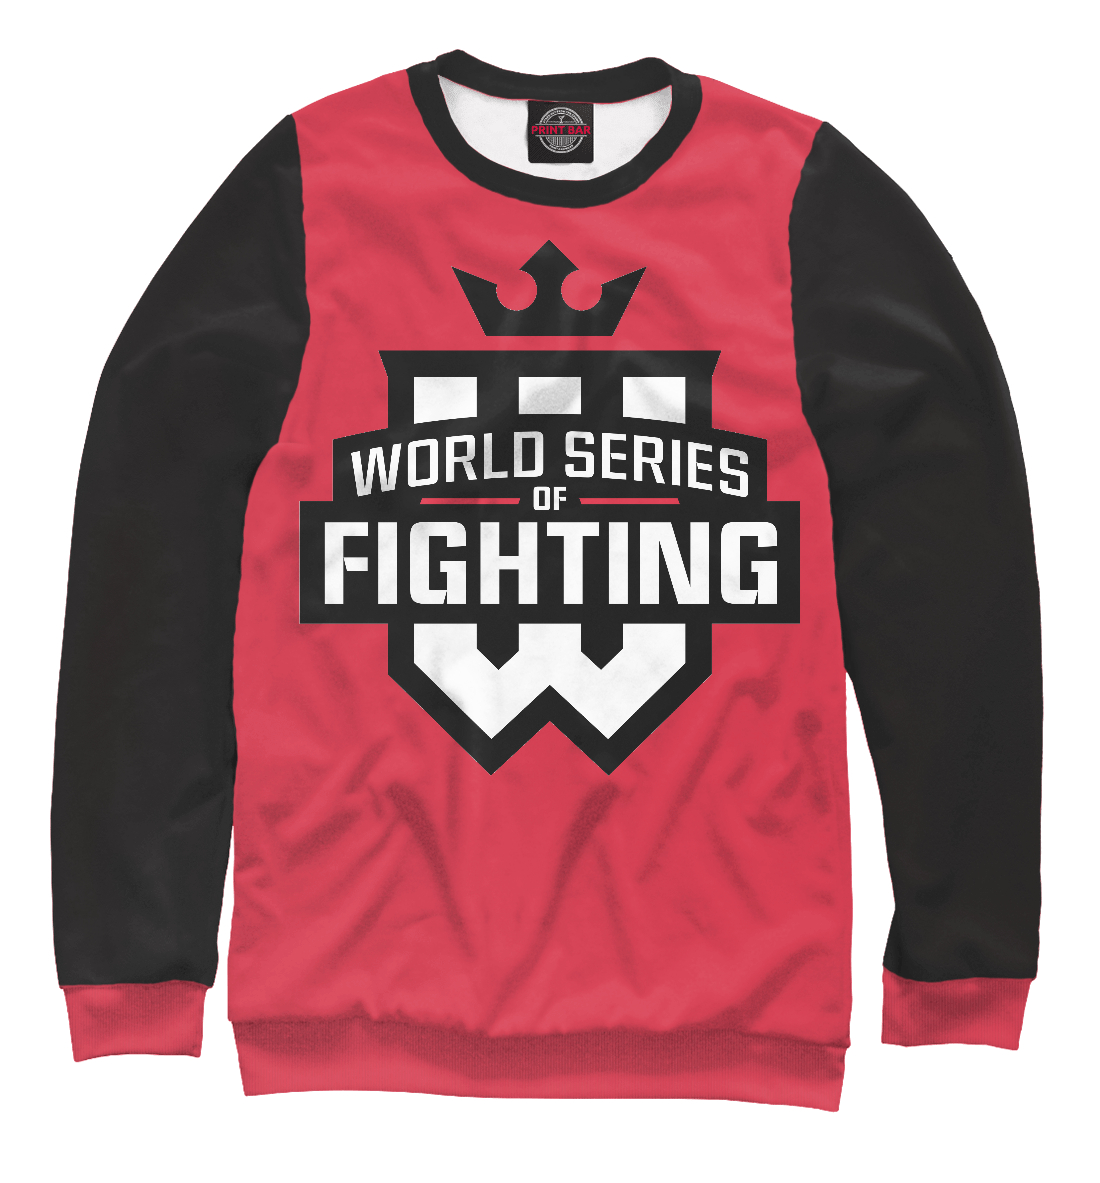 Купить WSOF: World Series Of Fighting, Printbar, Свитшоты, MNU-671710-swi-2